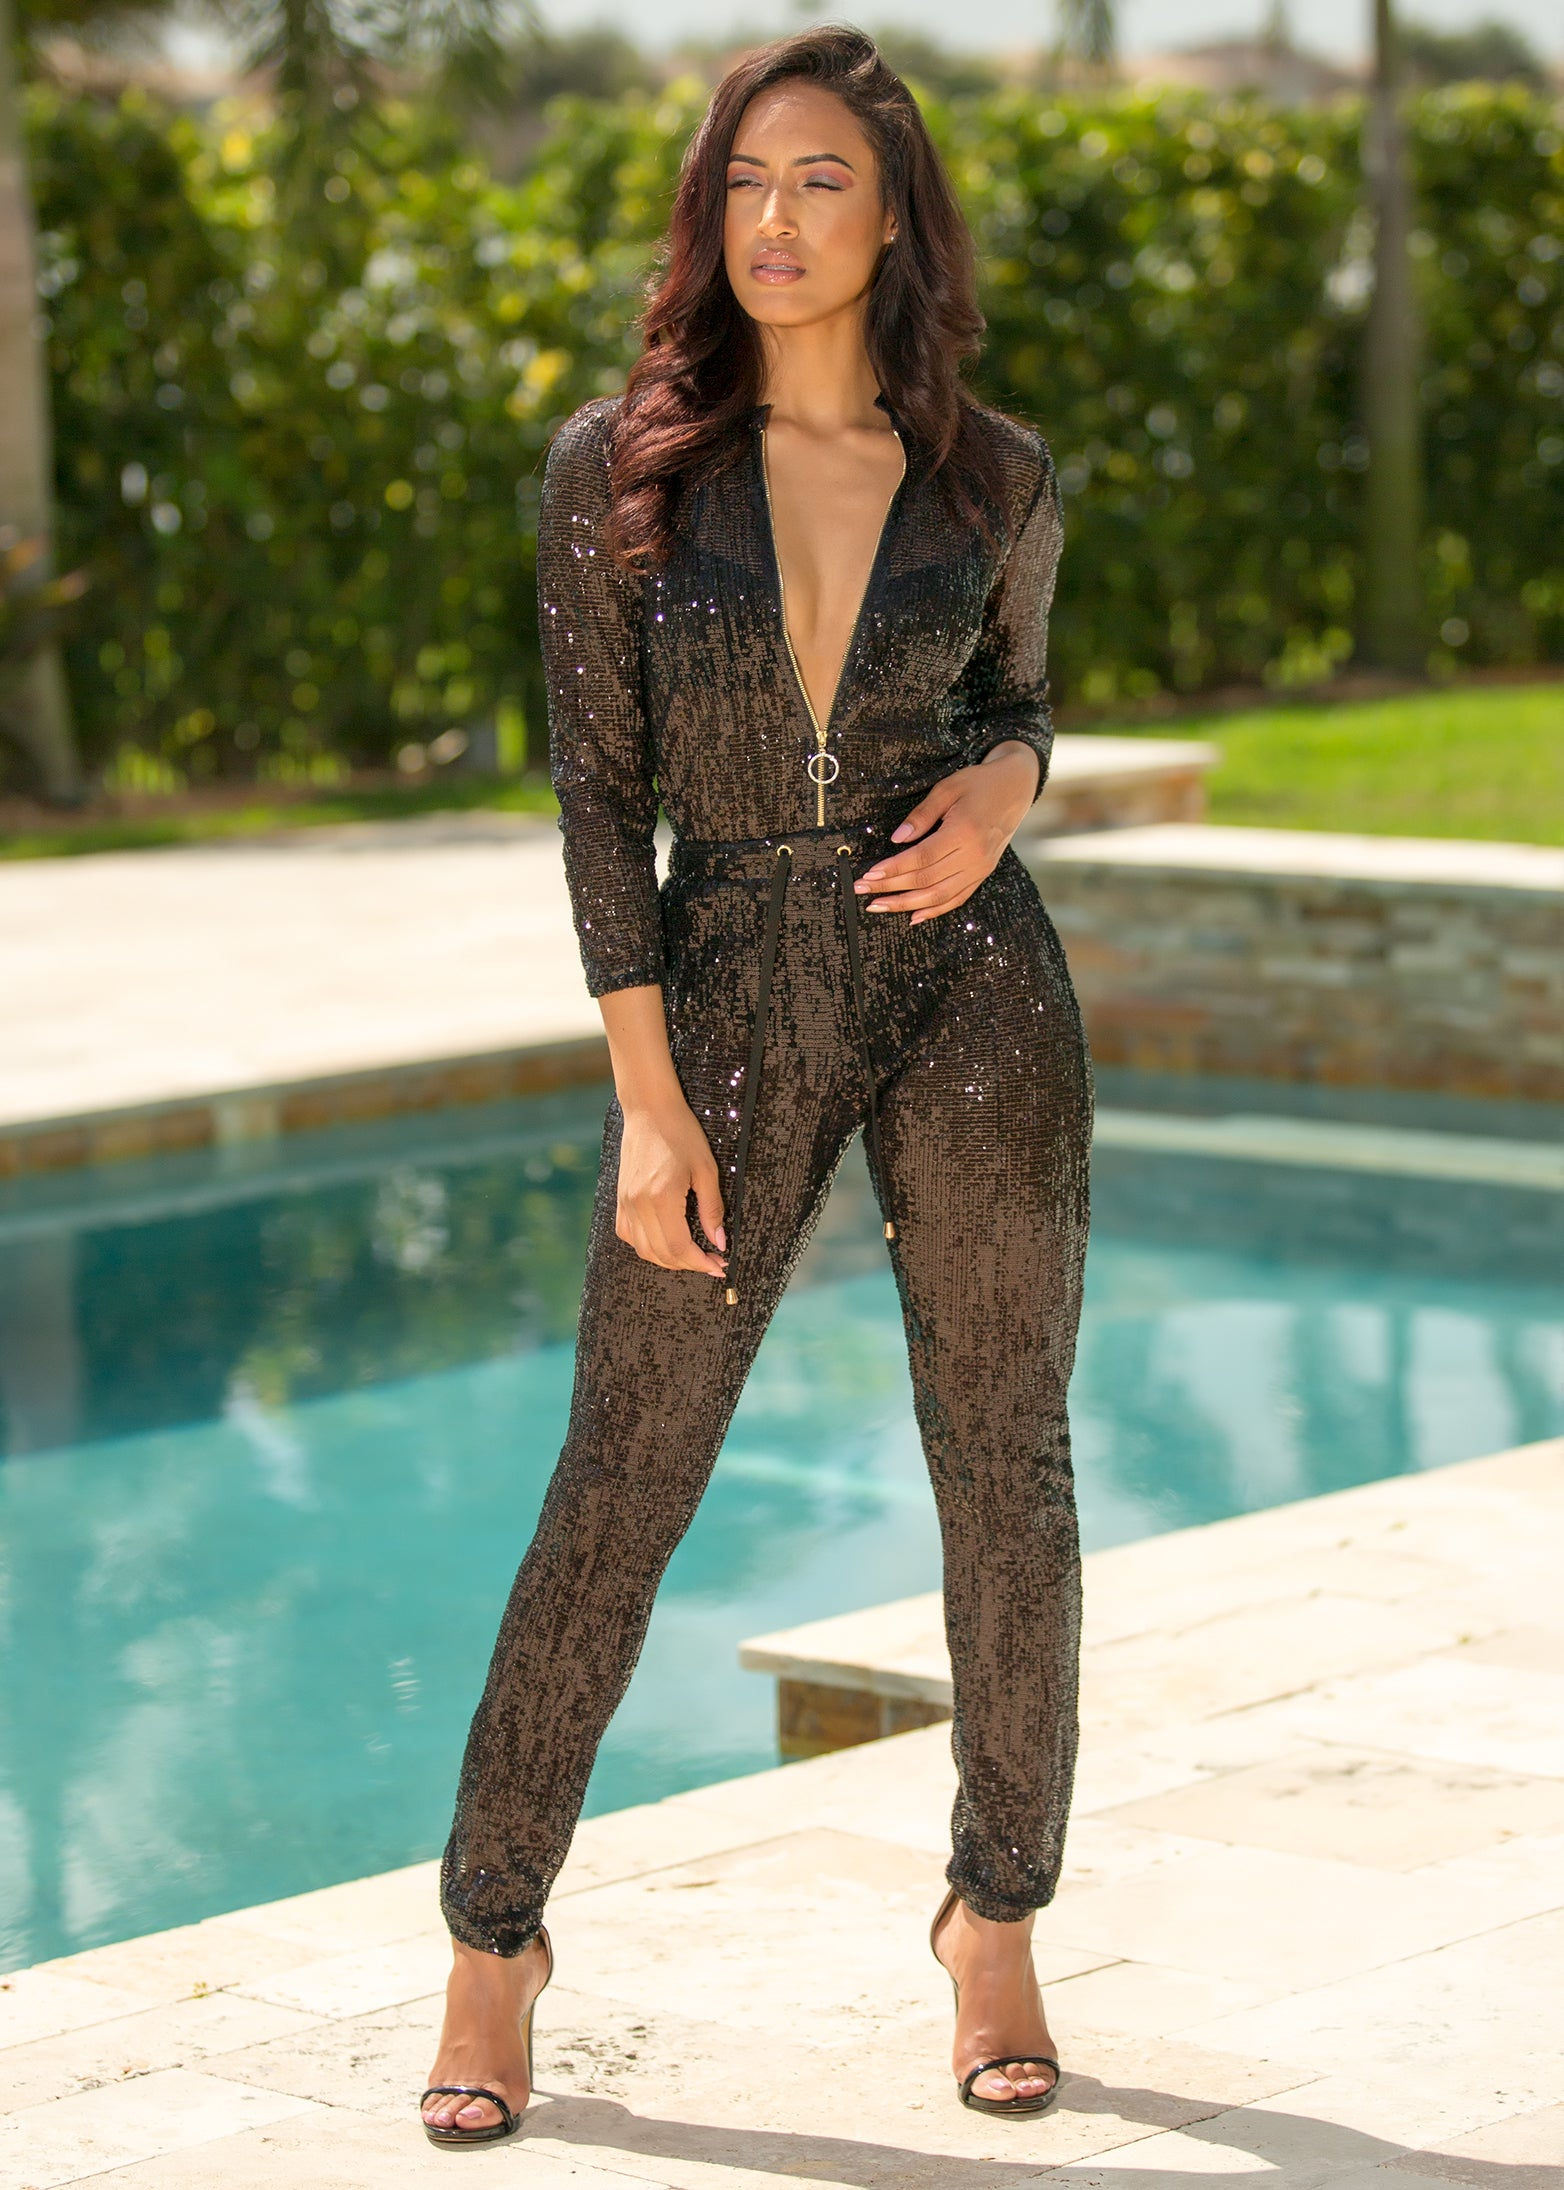 Genie - Lights On Black Sequin Jumpsuit - Semai House Of fashion